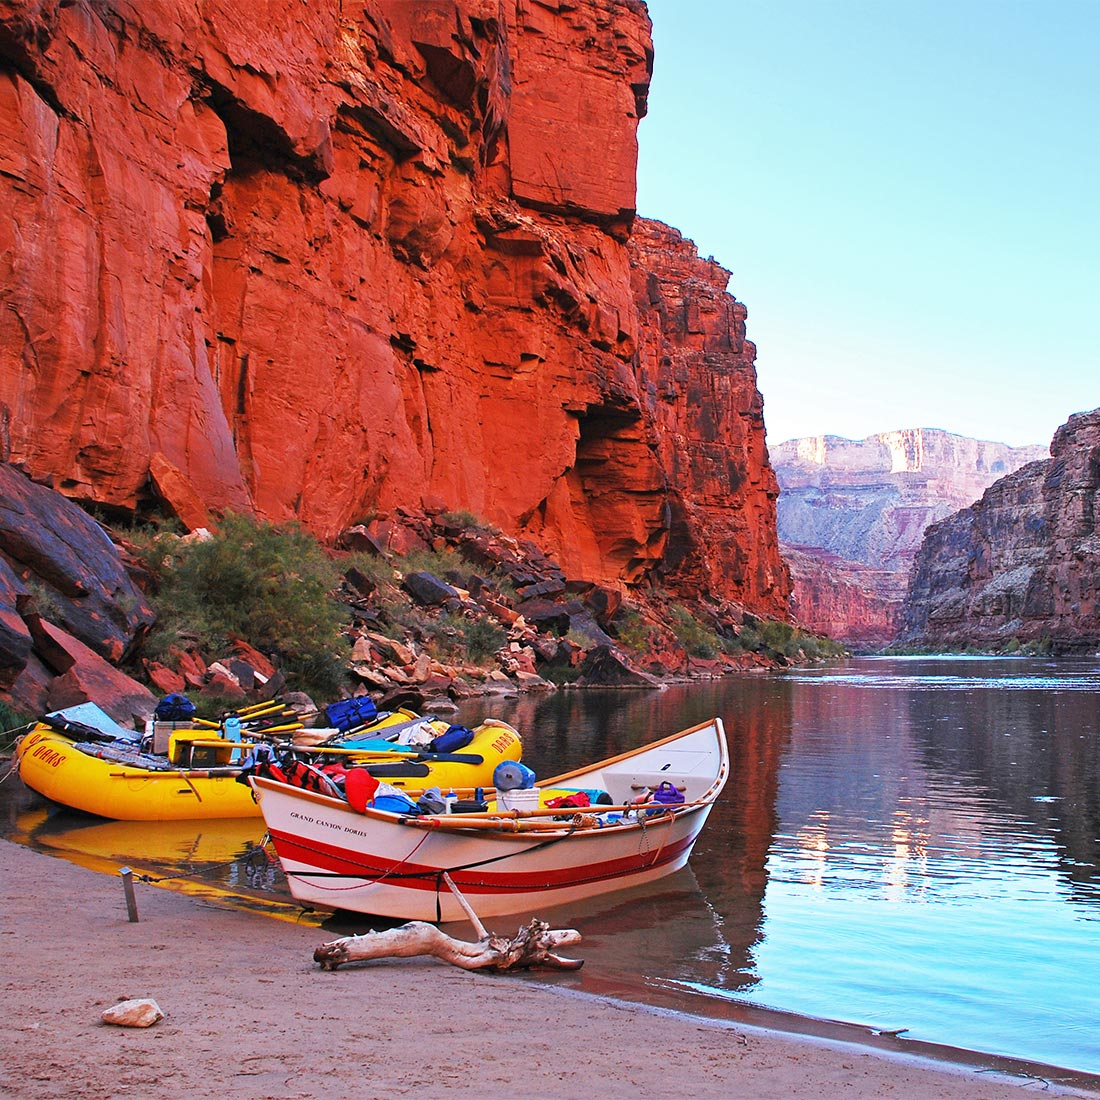 Rafts and dory in the Grand Canyon